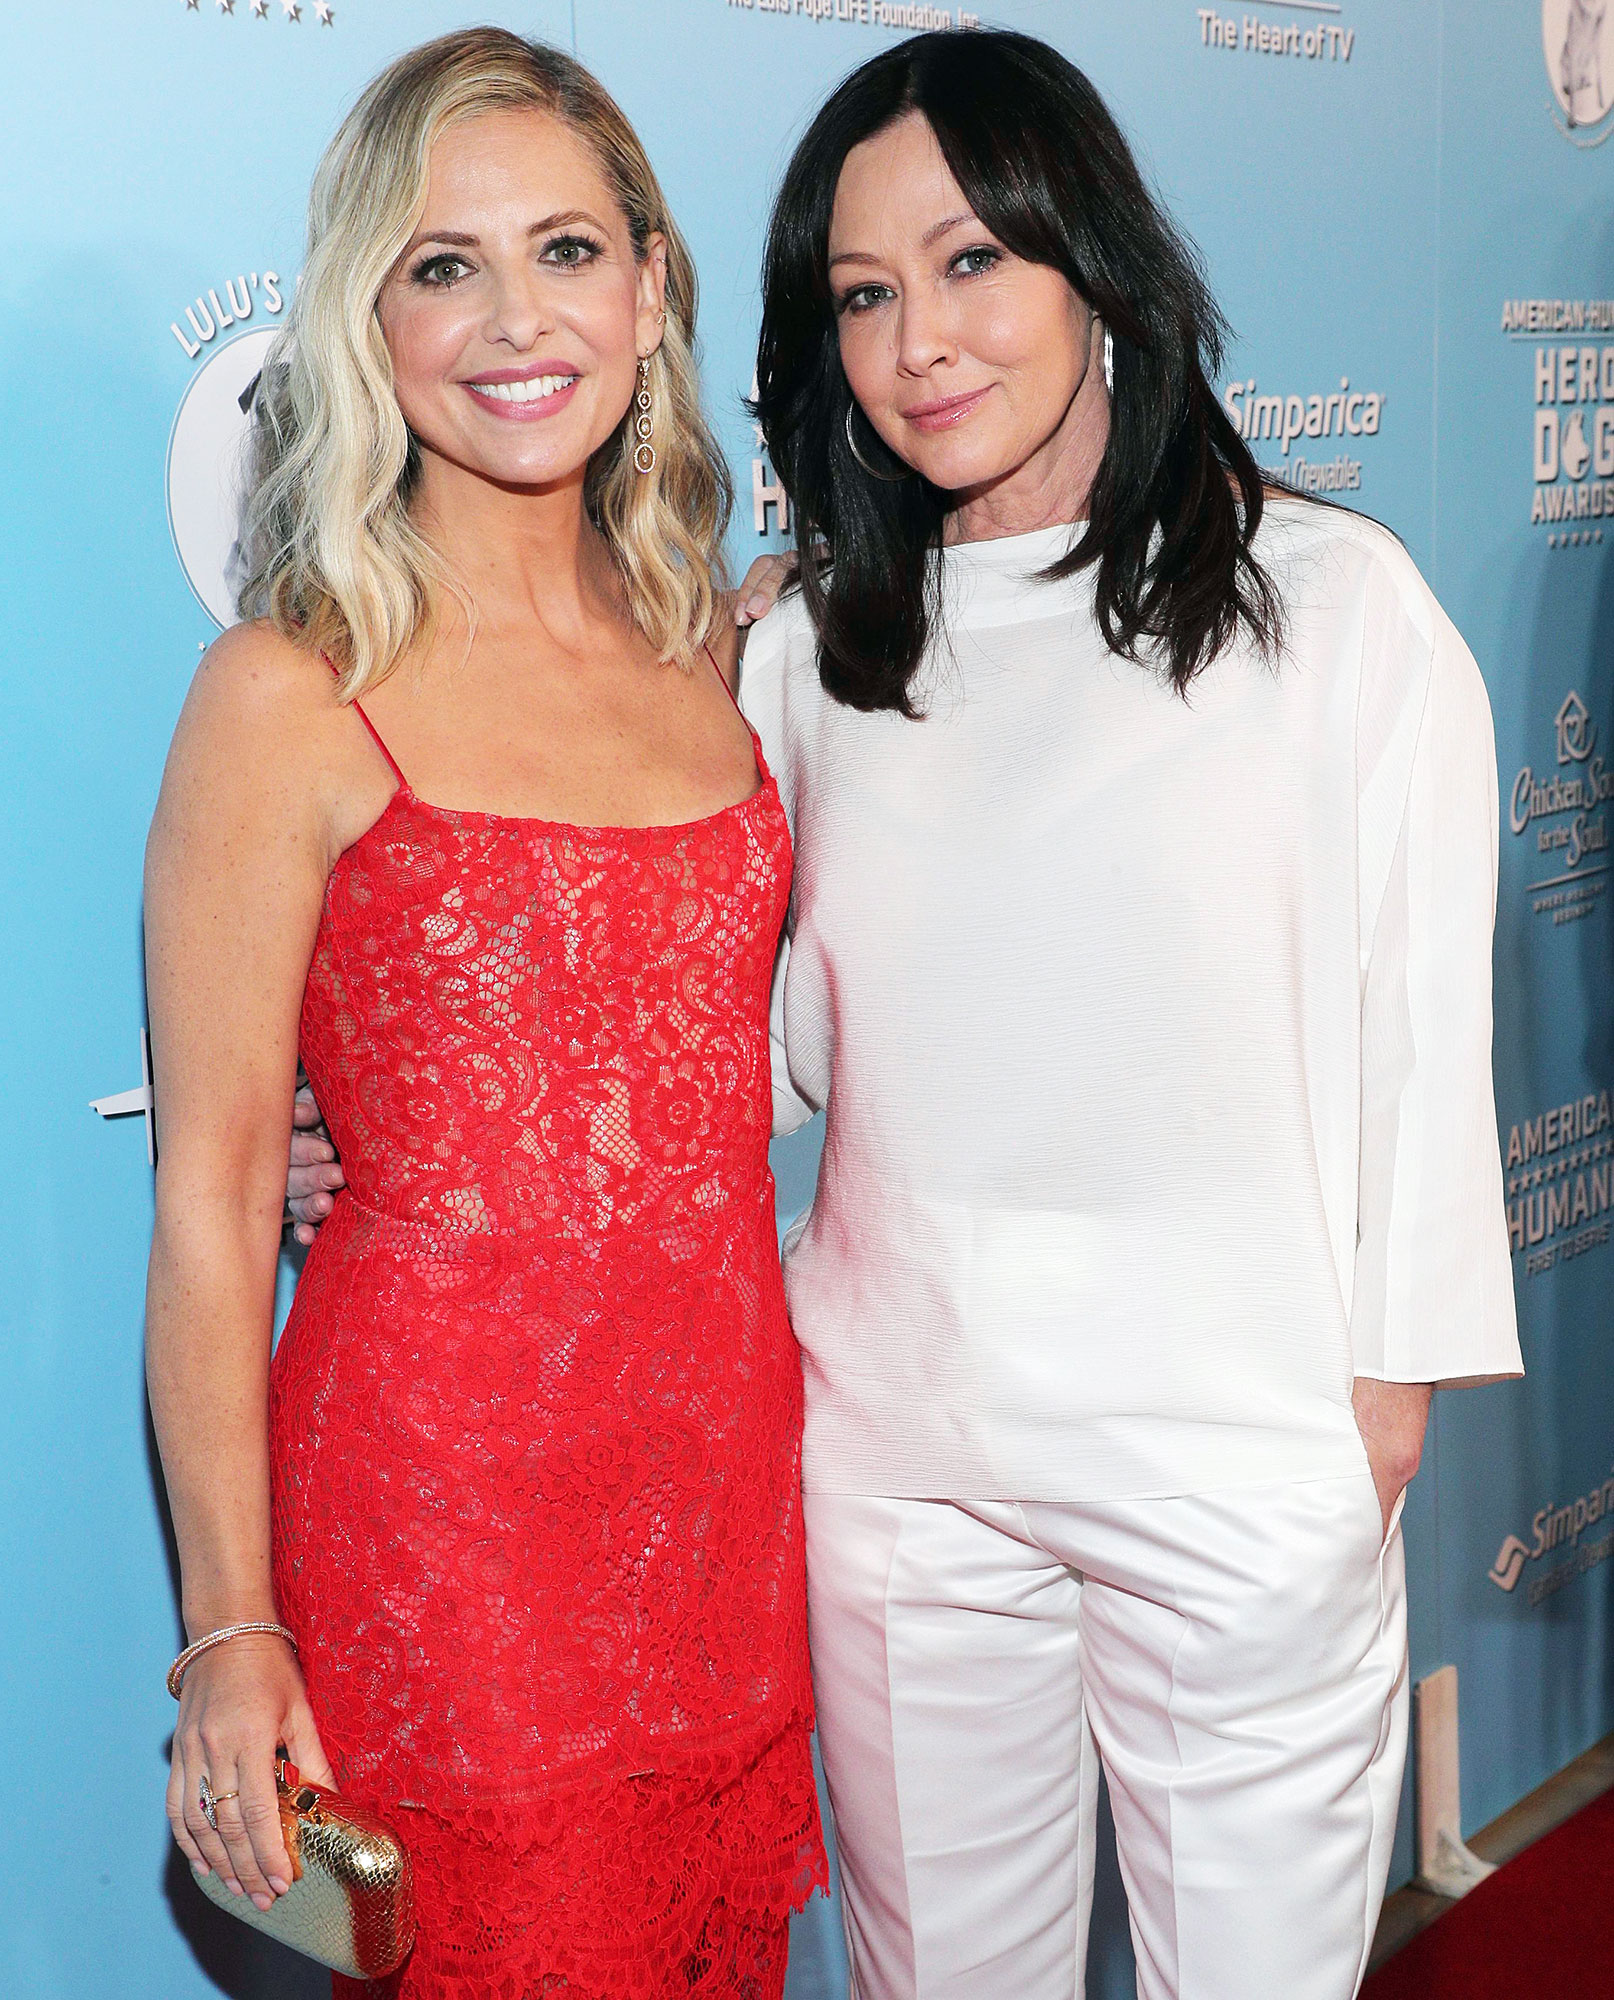 Sarah Michelle Gellar Sends Love to Shannen Doherty After Cancer Recurrence